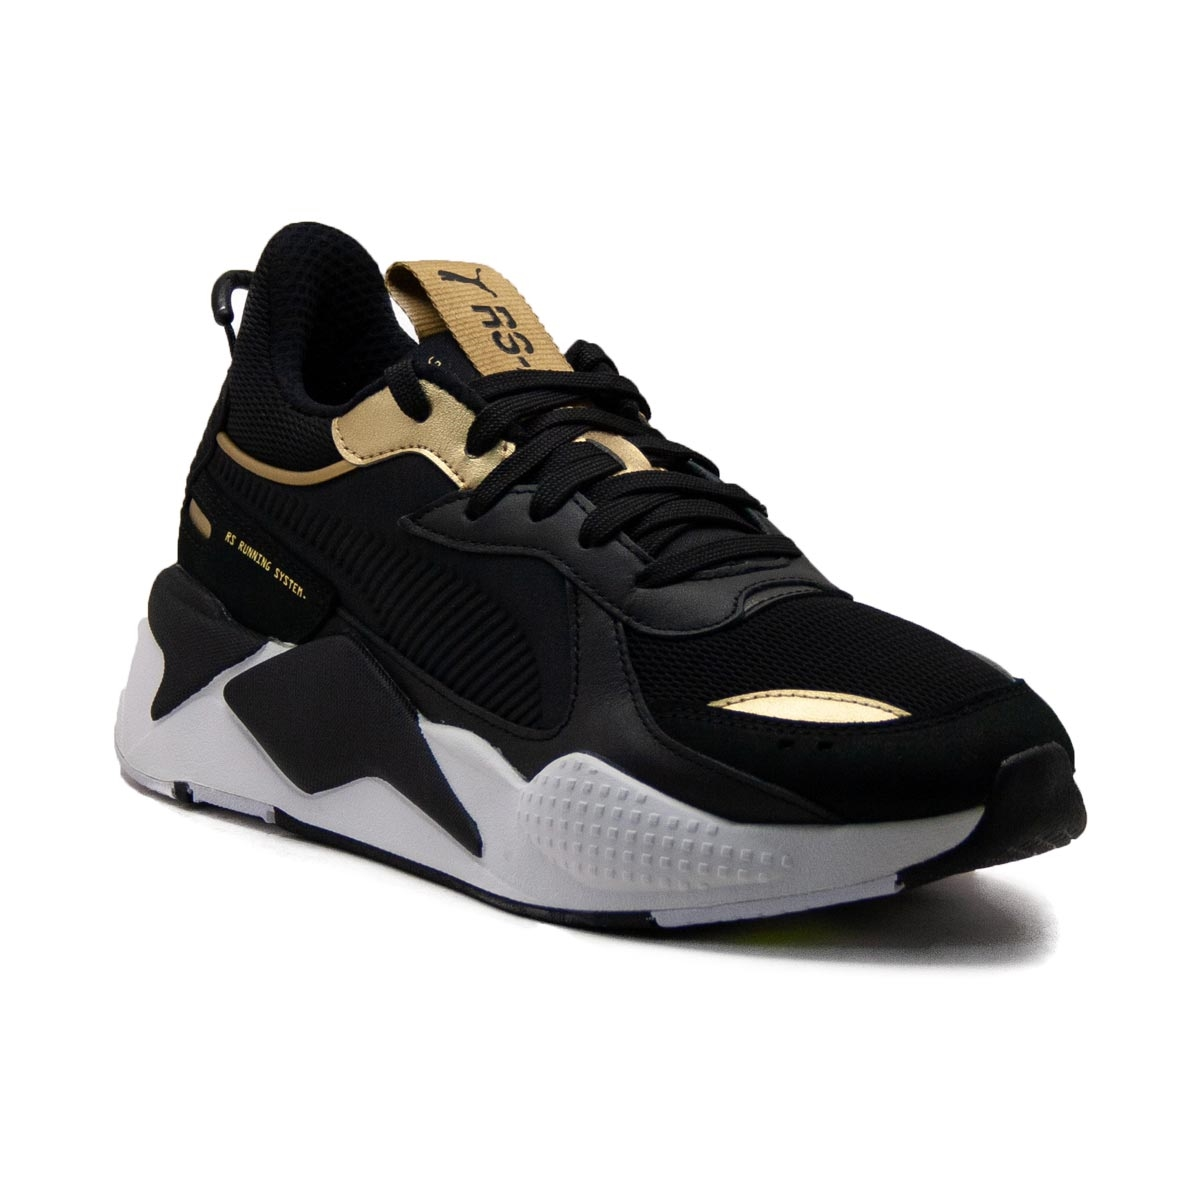 Sneakers Puma RS-X Trophy Black Gold 369451-01  360127995